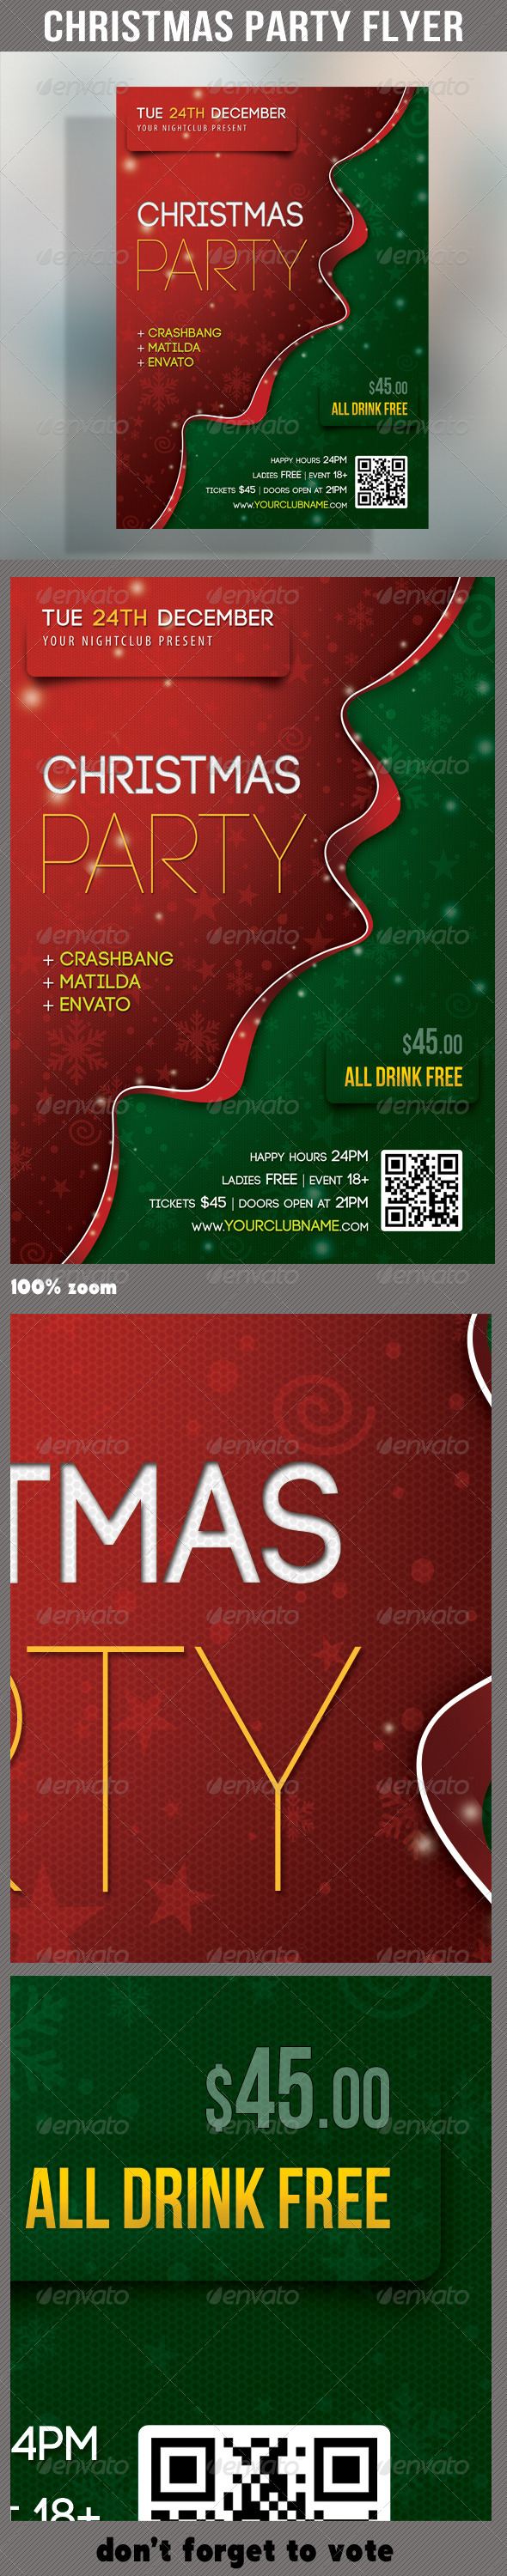 Merry Christmas Party Flyer 01 - Holidays Events